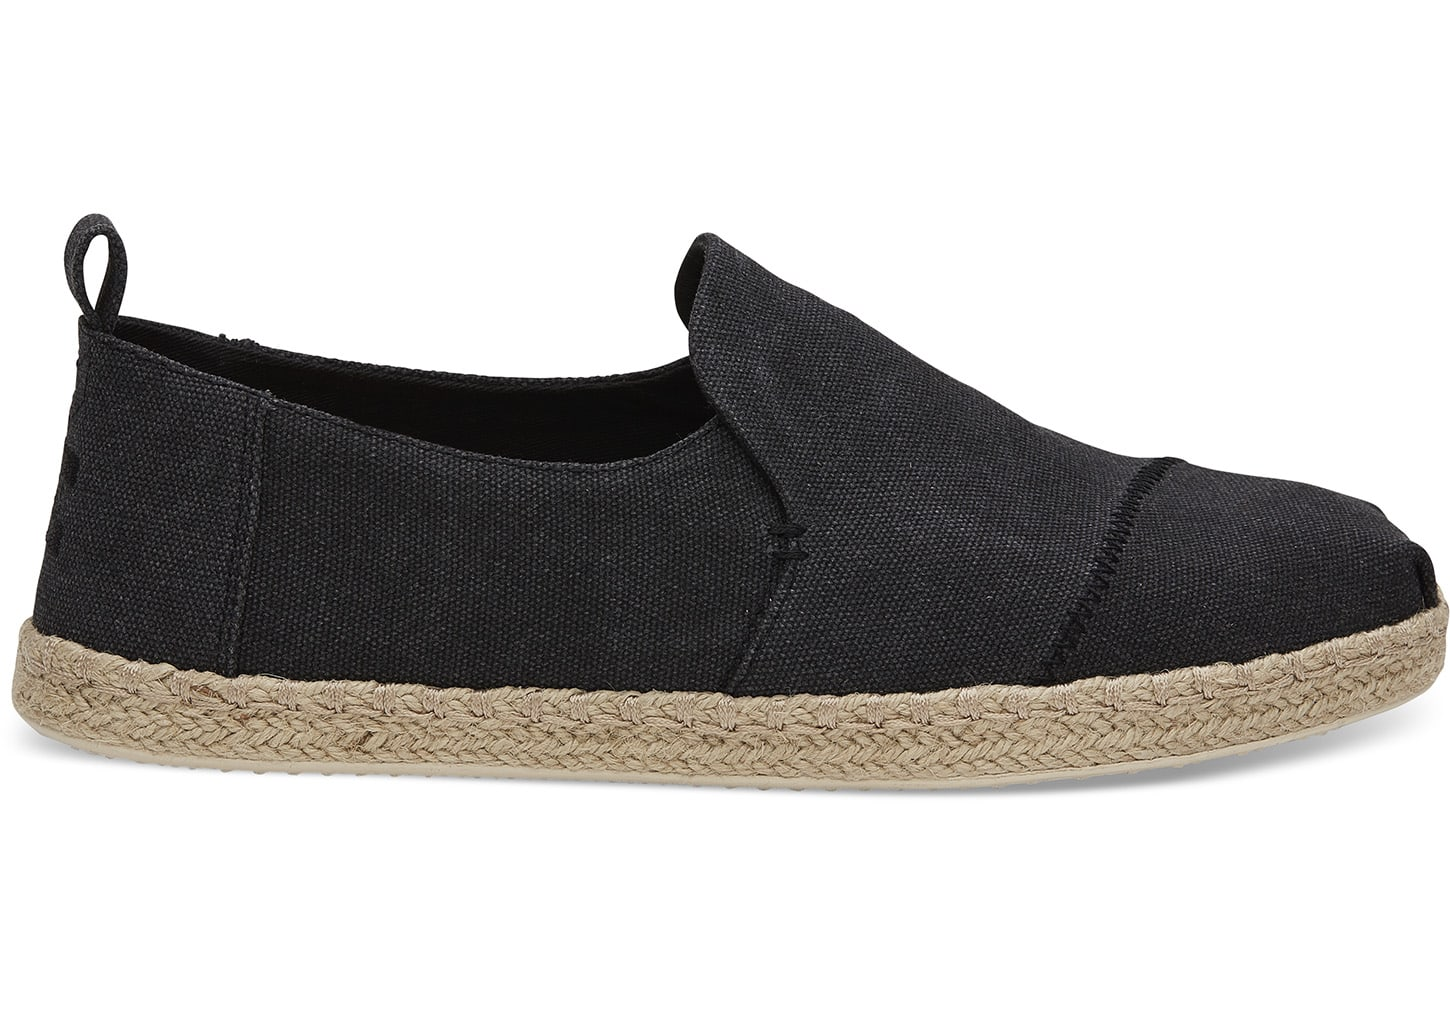 toms Zwarte Washed Canvas Deconstructed Alpargatas Espadrilles Voor Heren